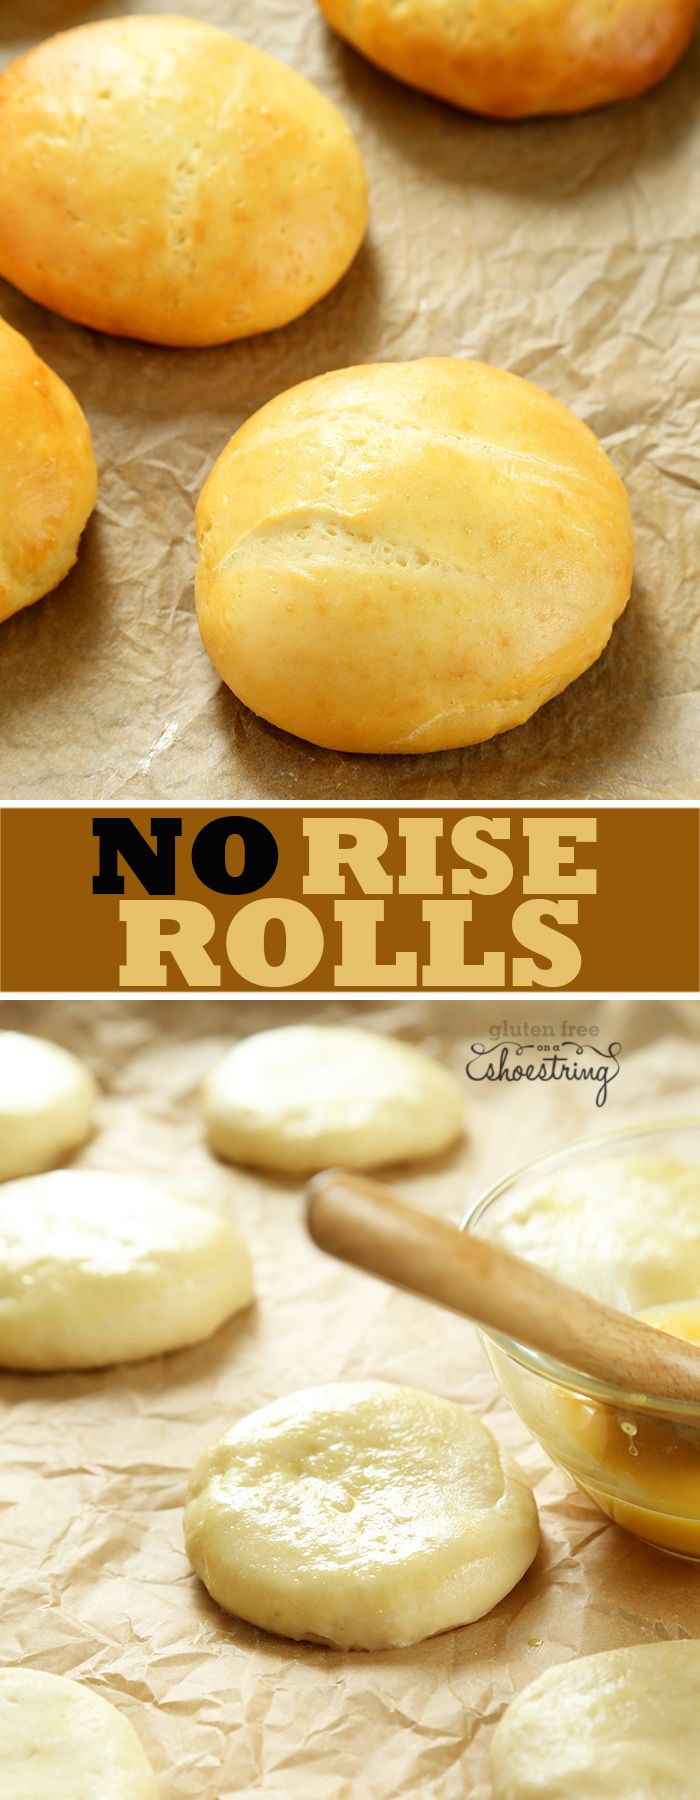 No Rise Gluten Free Yeast Rolls | Just look at how fluffy these are!